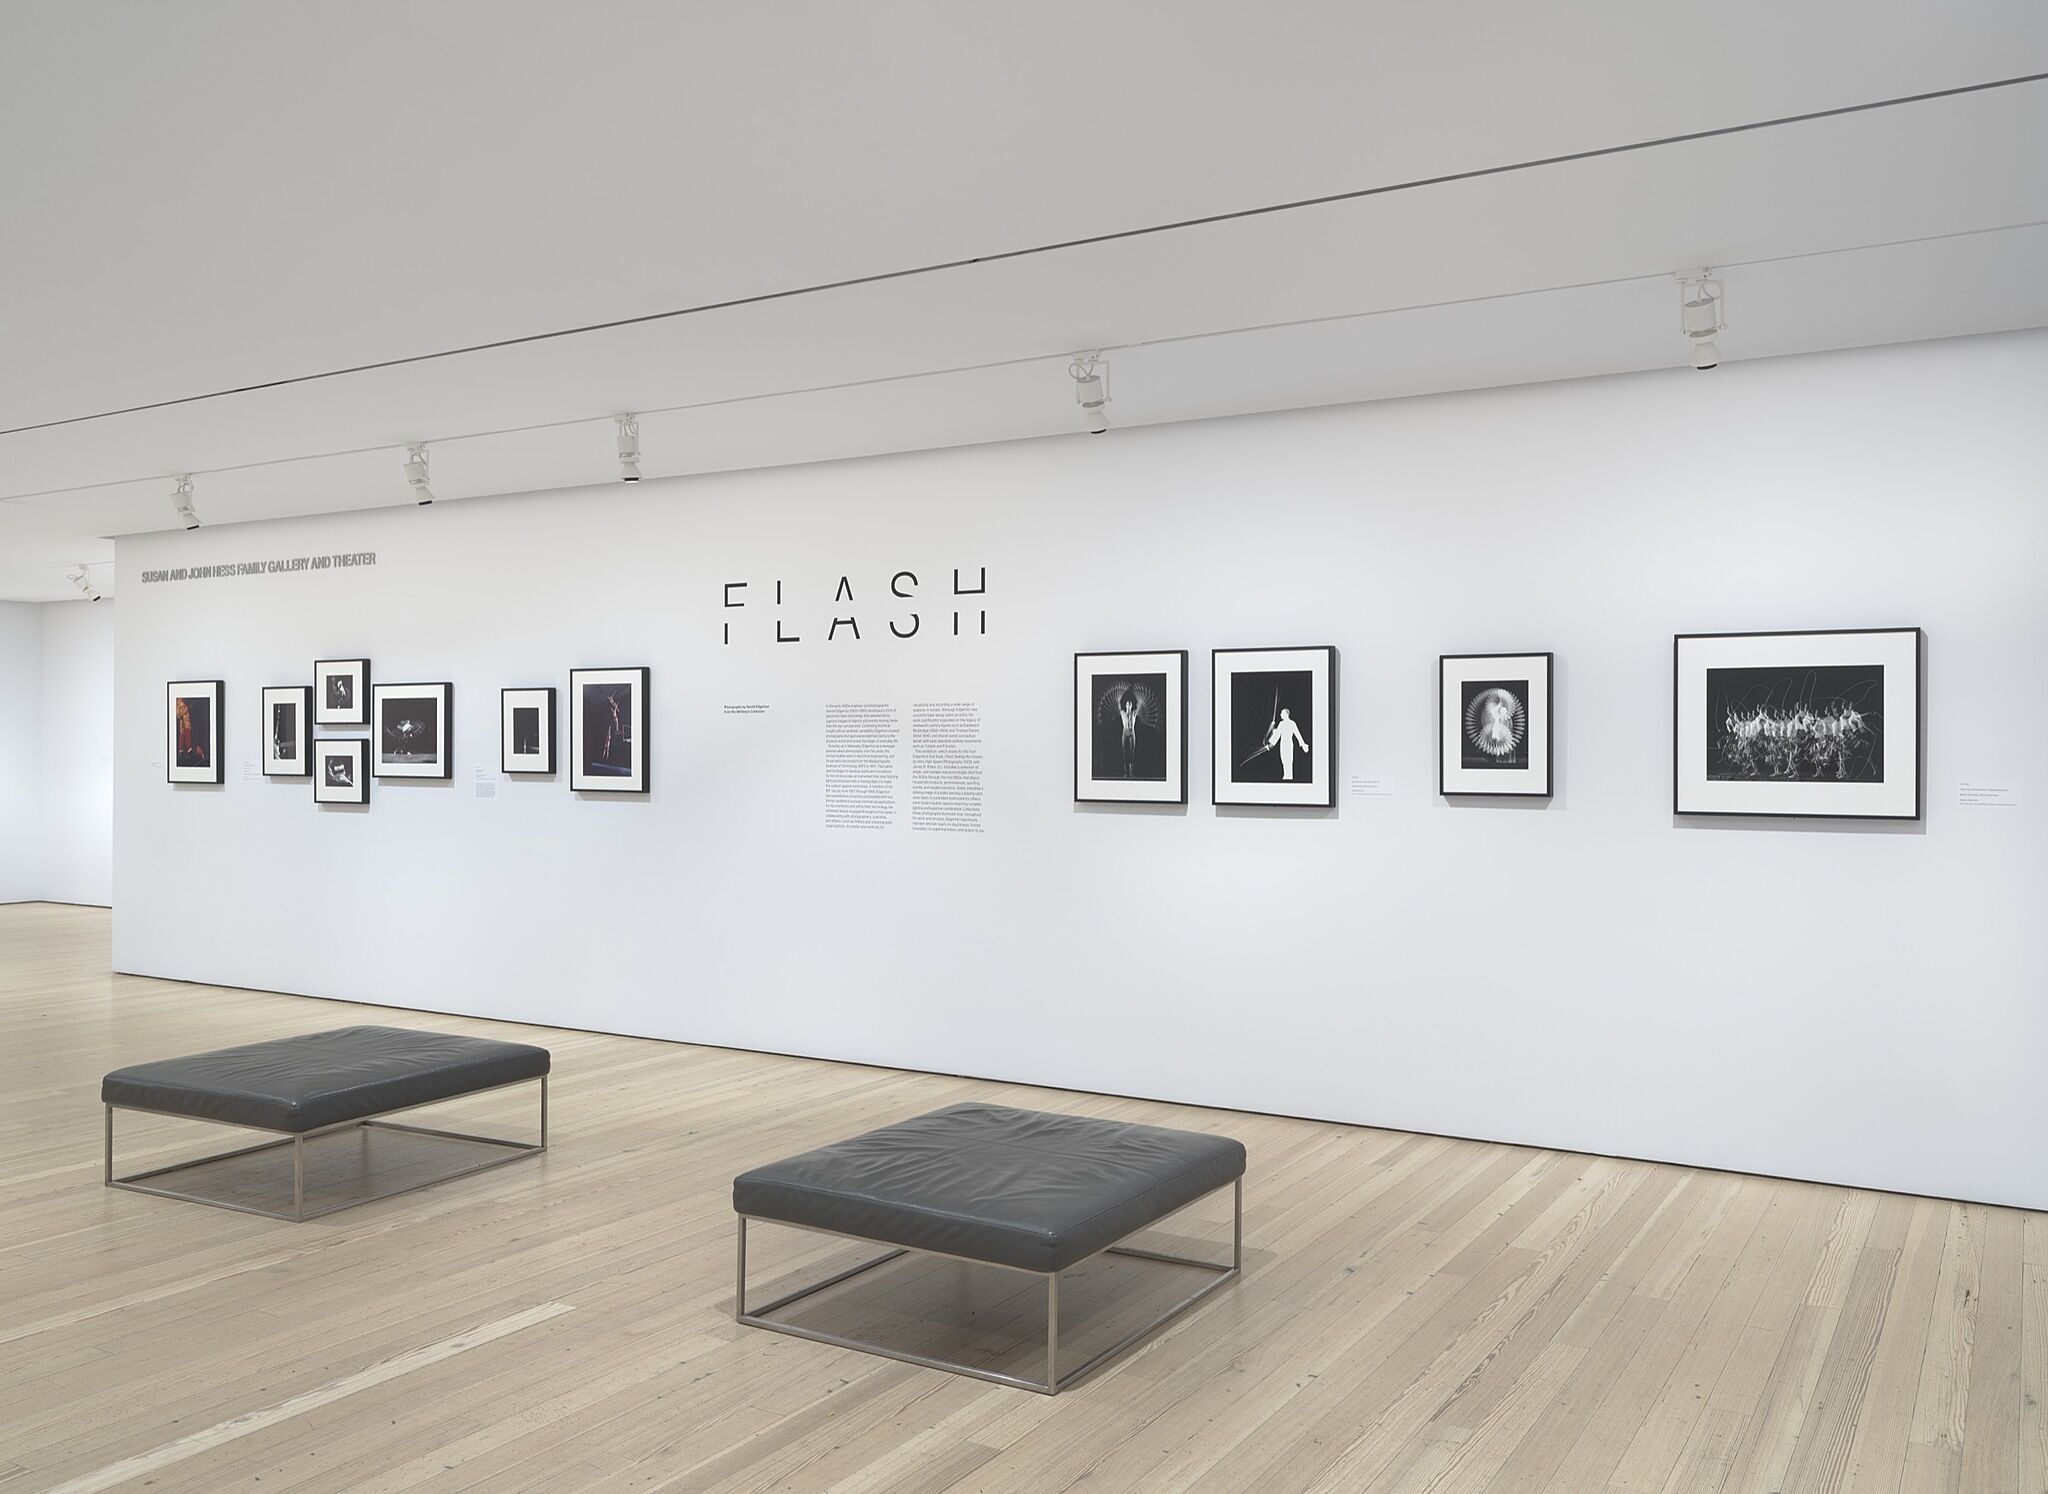 A gallery space with various photographs framed on the wall.